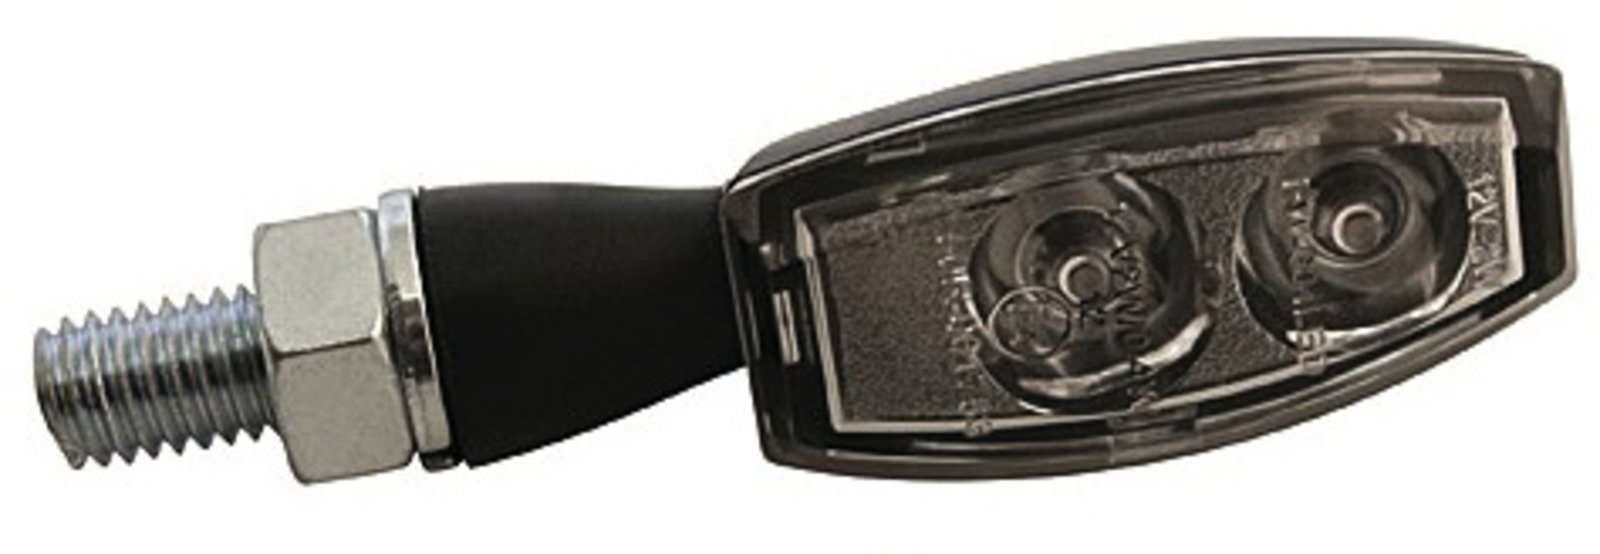 LED Turn Signals; Black BlazeClear Lens Type 41135